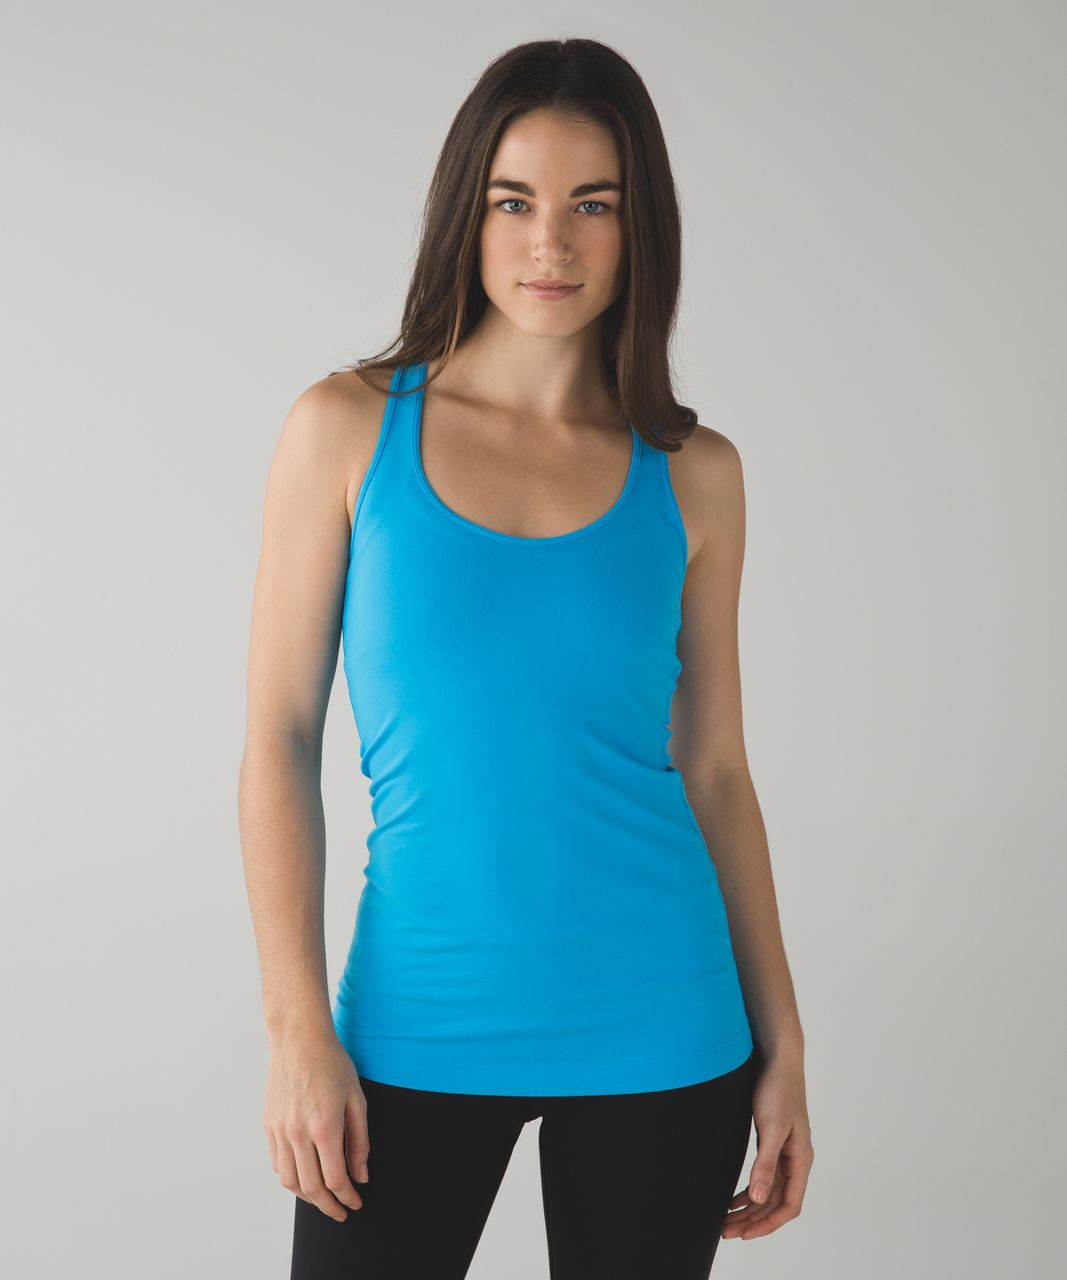 Lululemon Cool Racerback - Kayak Blue